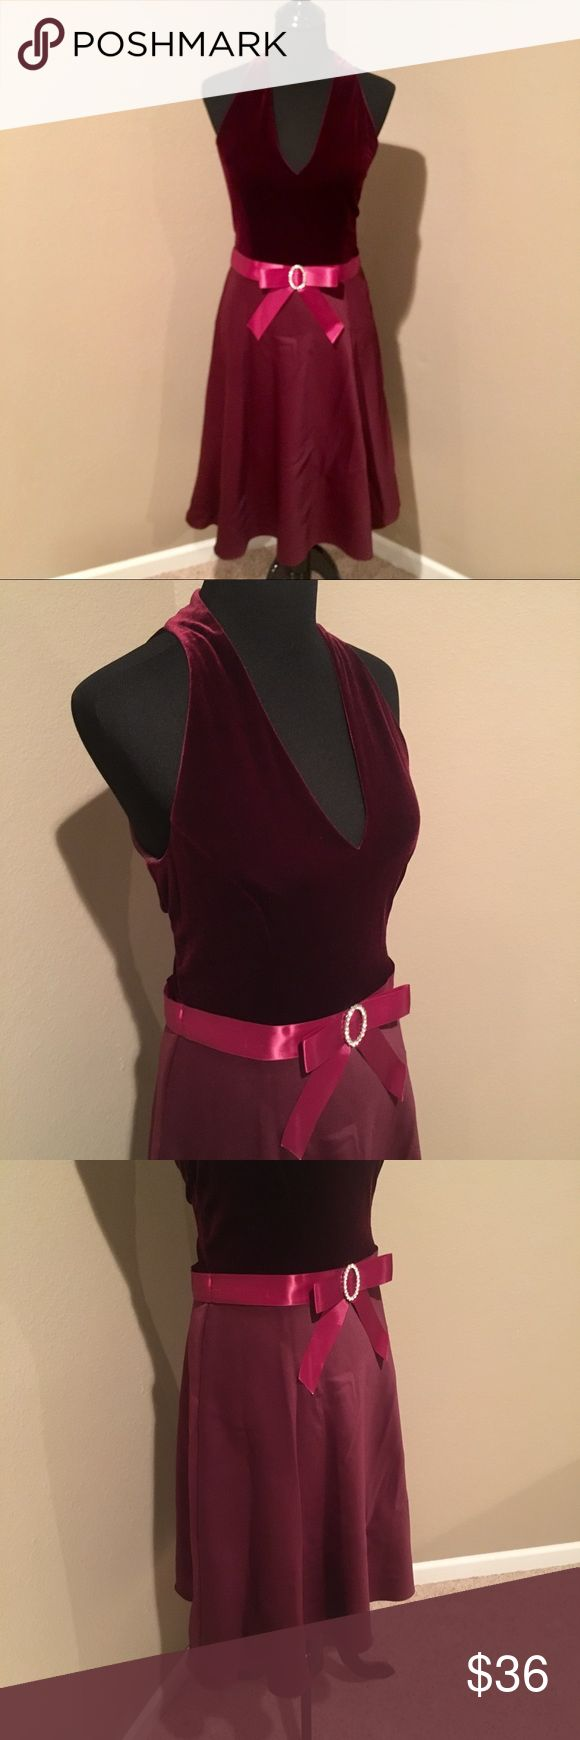 """❤️Jessica Howard burgundy party dress Jessica Howard burgundy party dress. Sleeveless v-neck velvet top with zip up back and two buttons at neck.  Skirt with full lining & netting to give just the perfect amount of swing!  Ribbon & bow around waist w/ crystal accents. So flattering!!  One tiny spot noted as shown - on back next to zipper. Also a couple of small imperfections on ribbon as shown - not very noticeable.   This would be perfect for Valentine's Day ❤️❤️!!   Bust - 17.5"""" Waist…"""